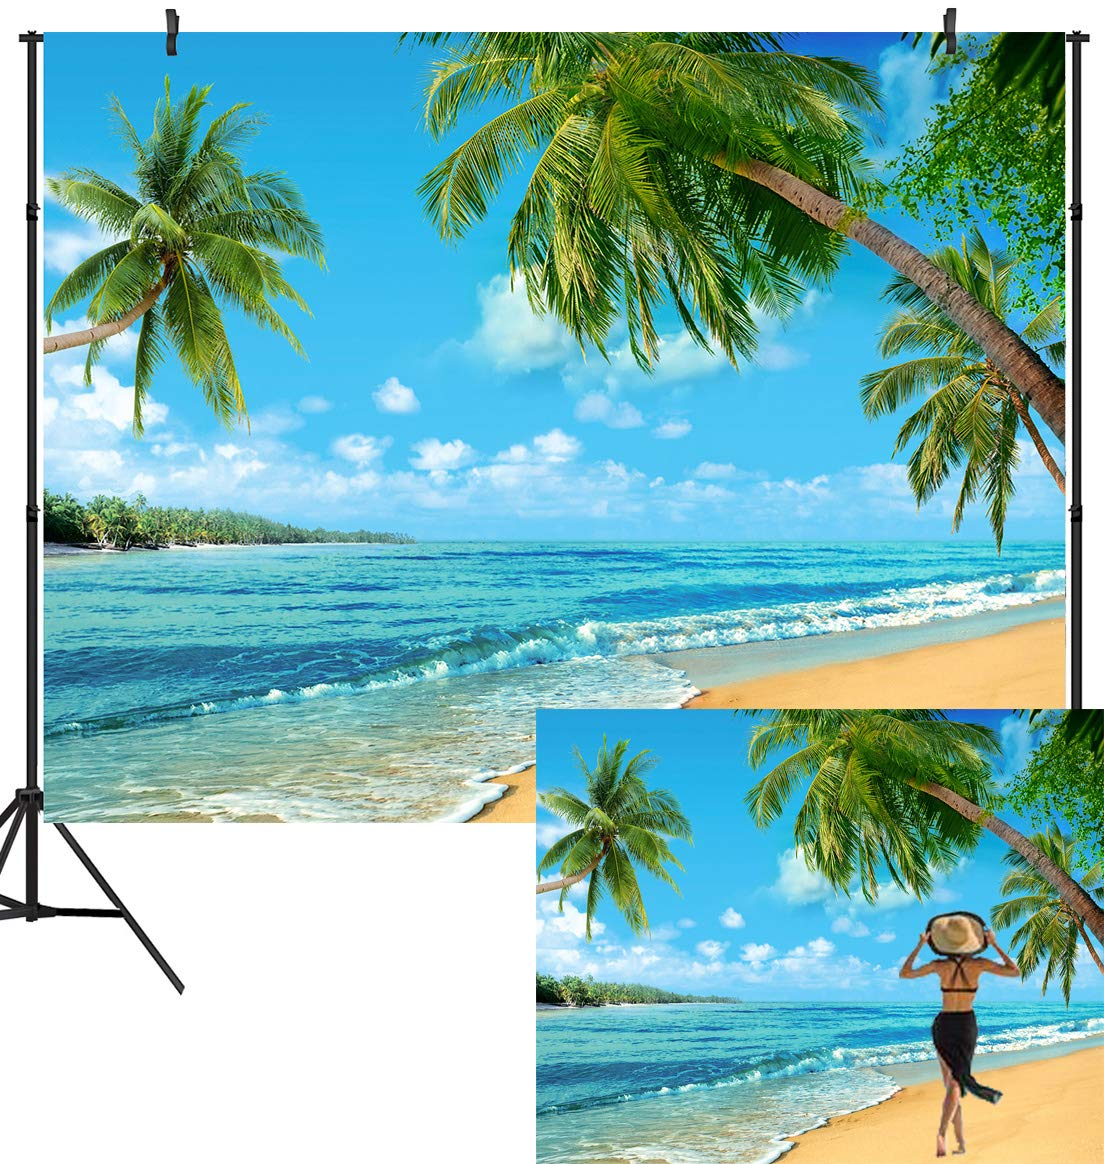 DULUDA 10X8FT Summer Tropical Beach Backdrop Seaside Island Palm Trees Photography Background for Picture Blue Sea Sky Sunshine Luau Themed Party Decorations Photo Booth Studio Props FS27E